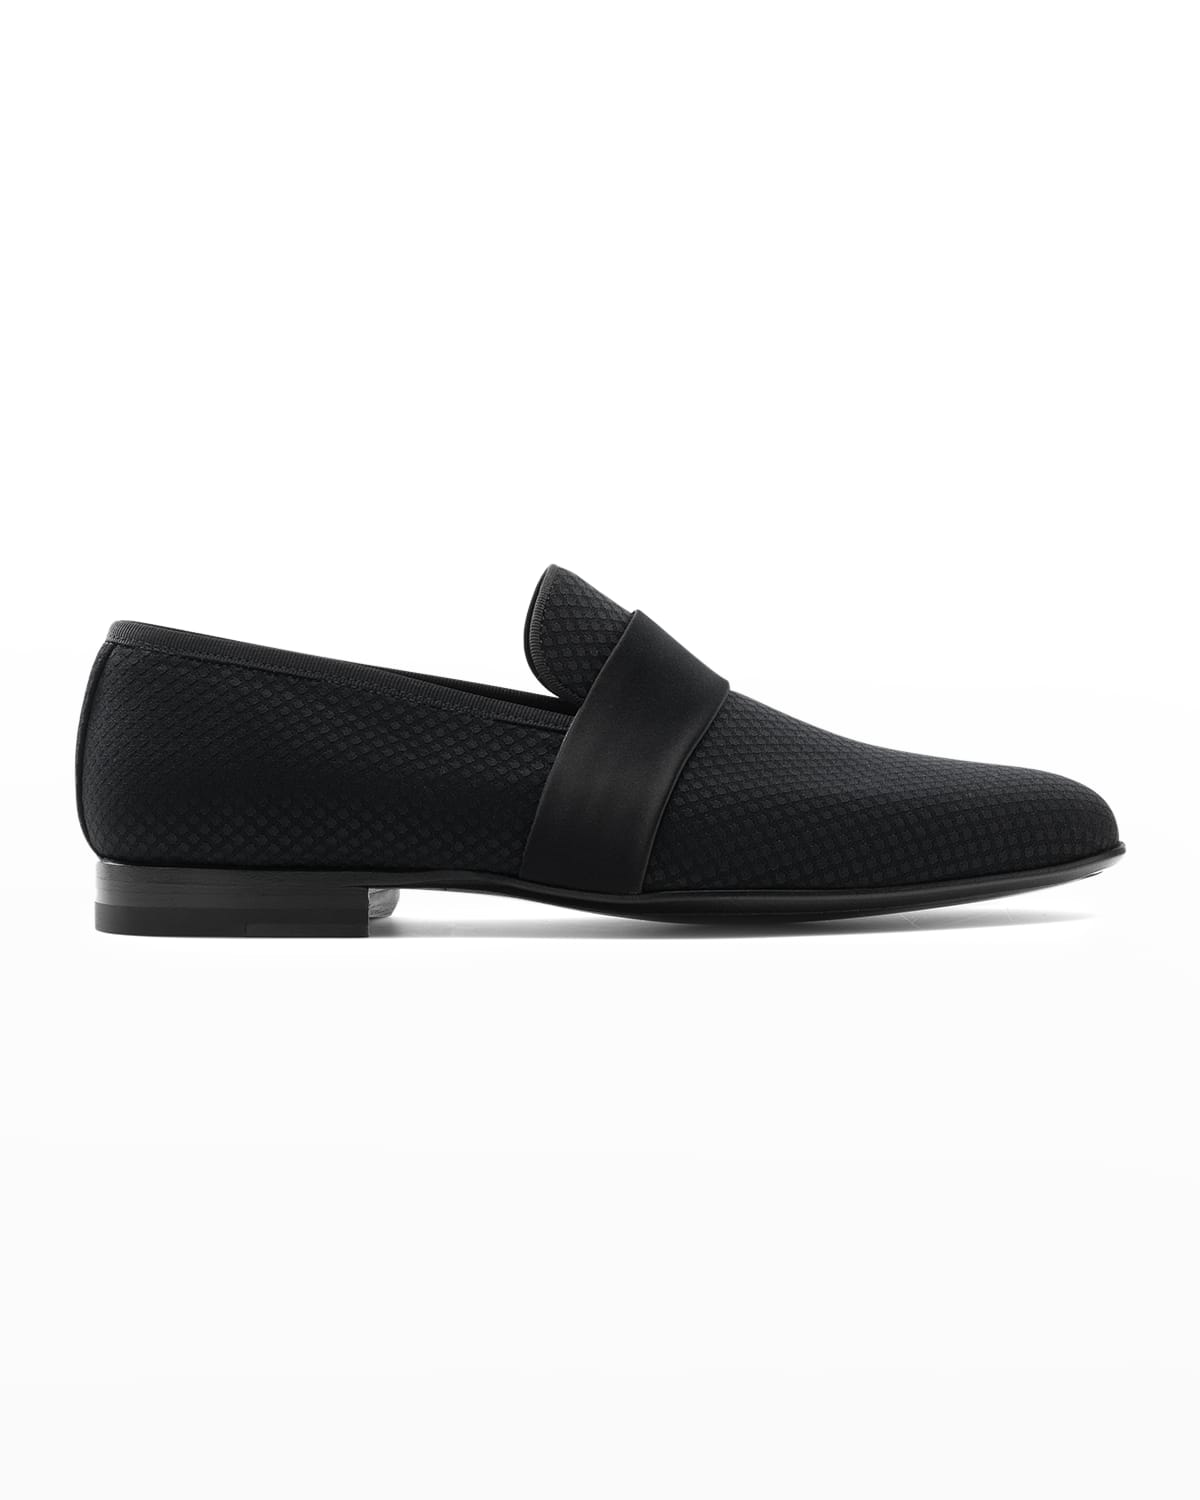 Men's Textured Loafers with Leather Strap